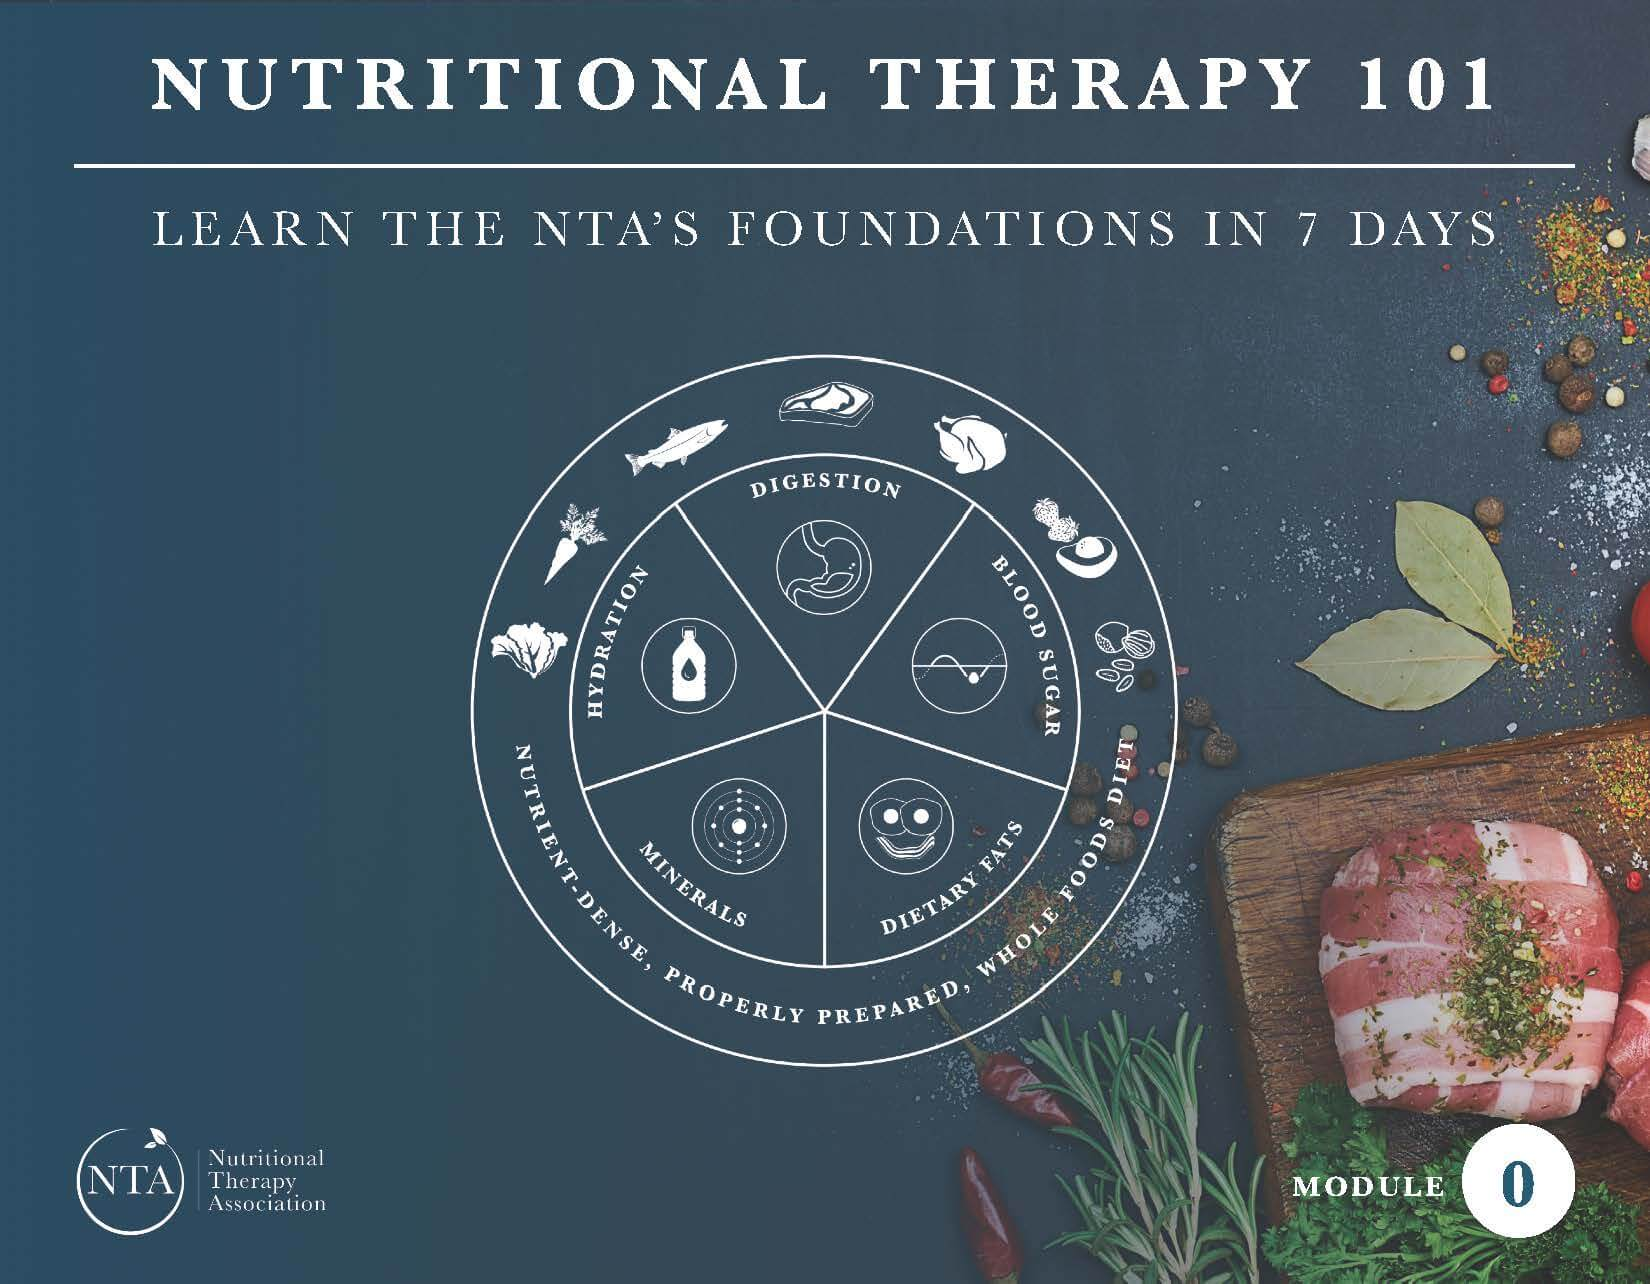 Nutritional Therapy 101